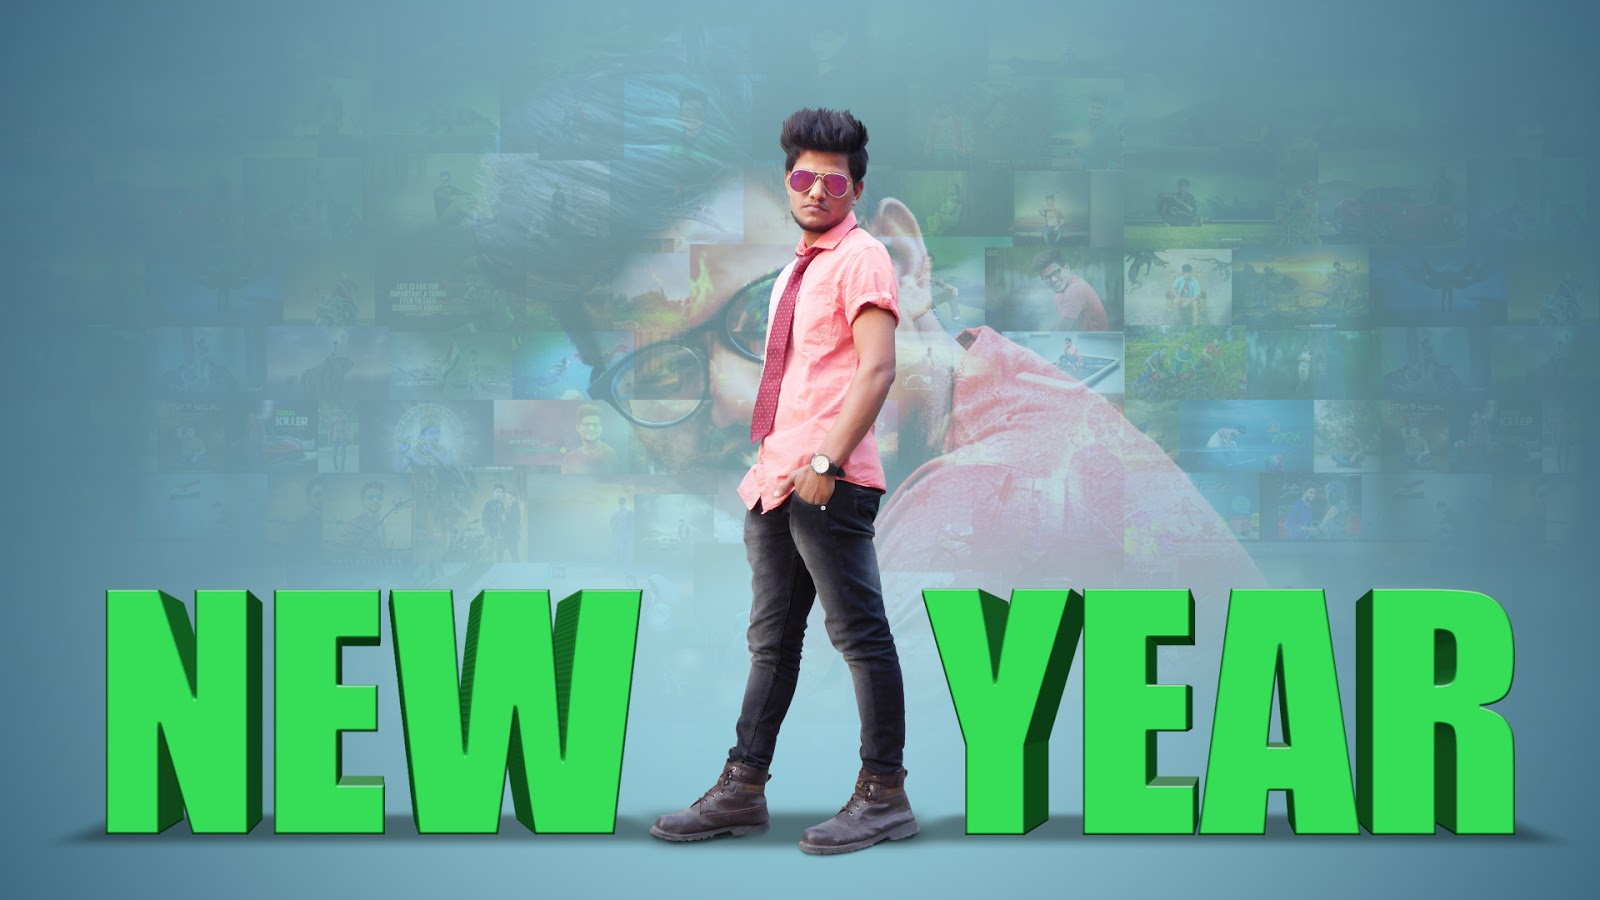 New year 2018 special photoshop poster design photoshop new year 2018 special photoshop poster design photoshop manipulation tutorial baditri Gallery